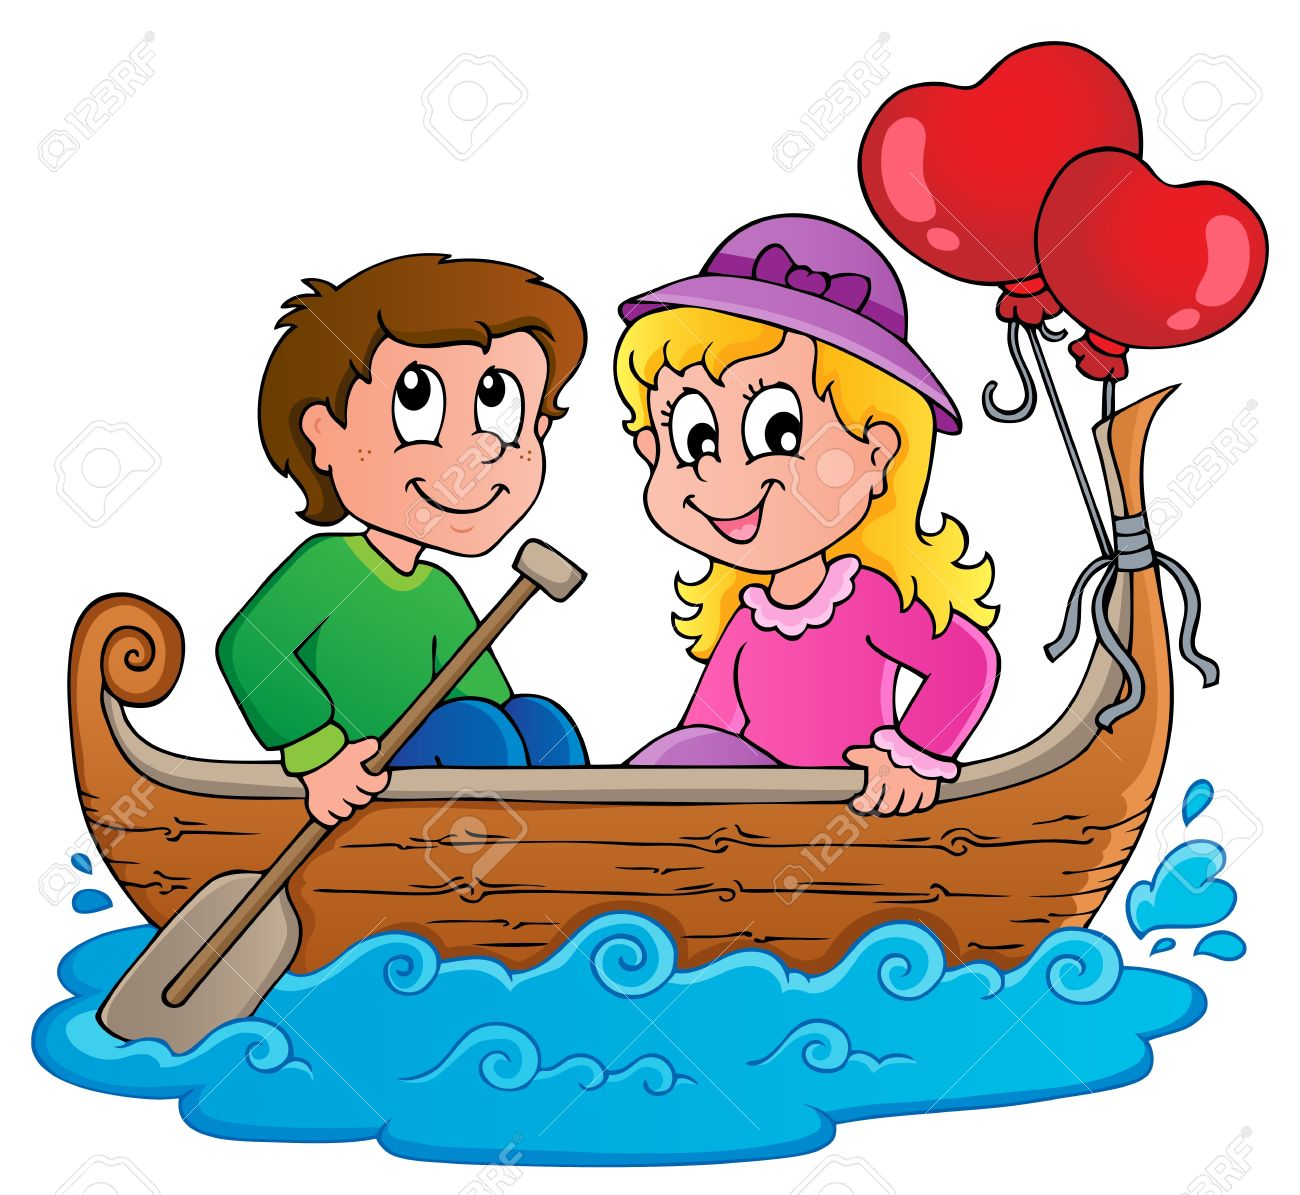 Free download best on. Boating clipart family boat